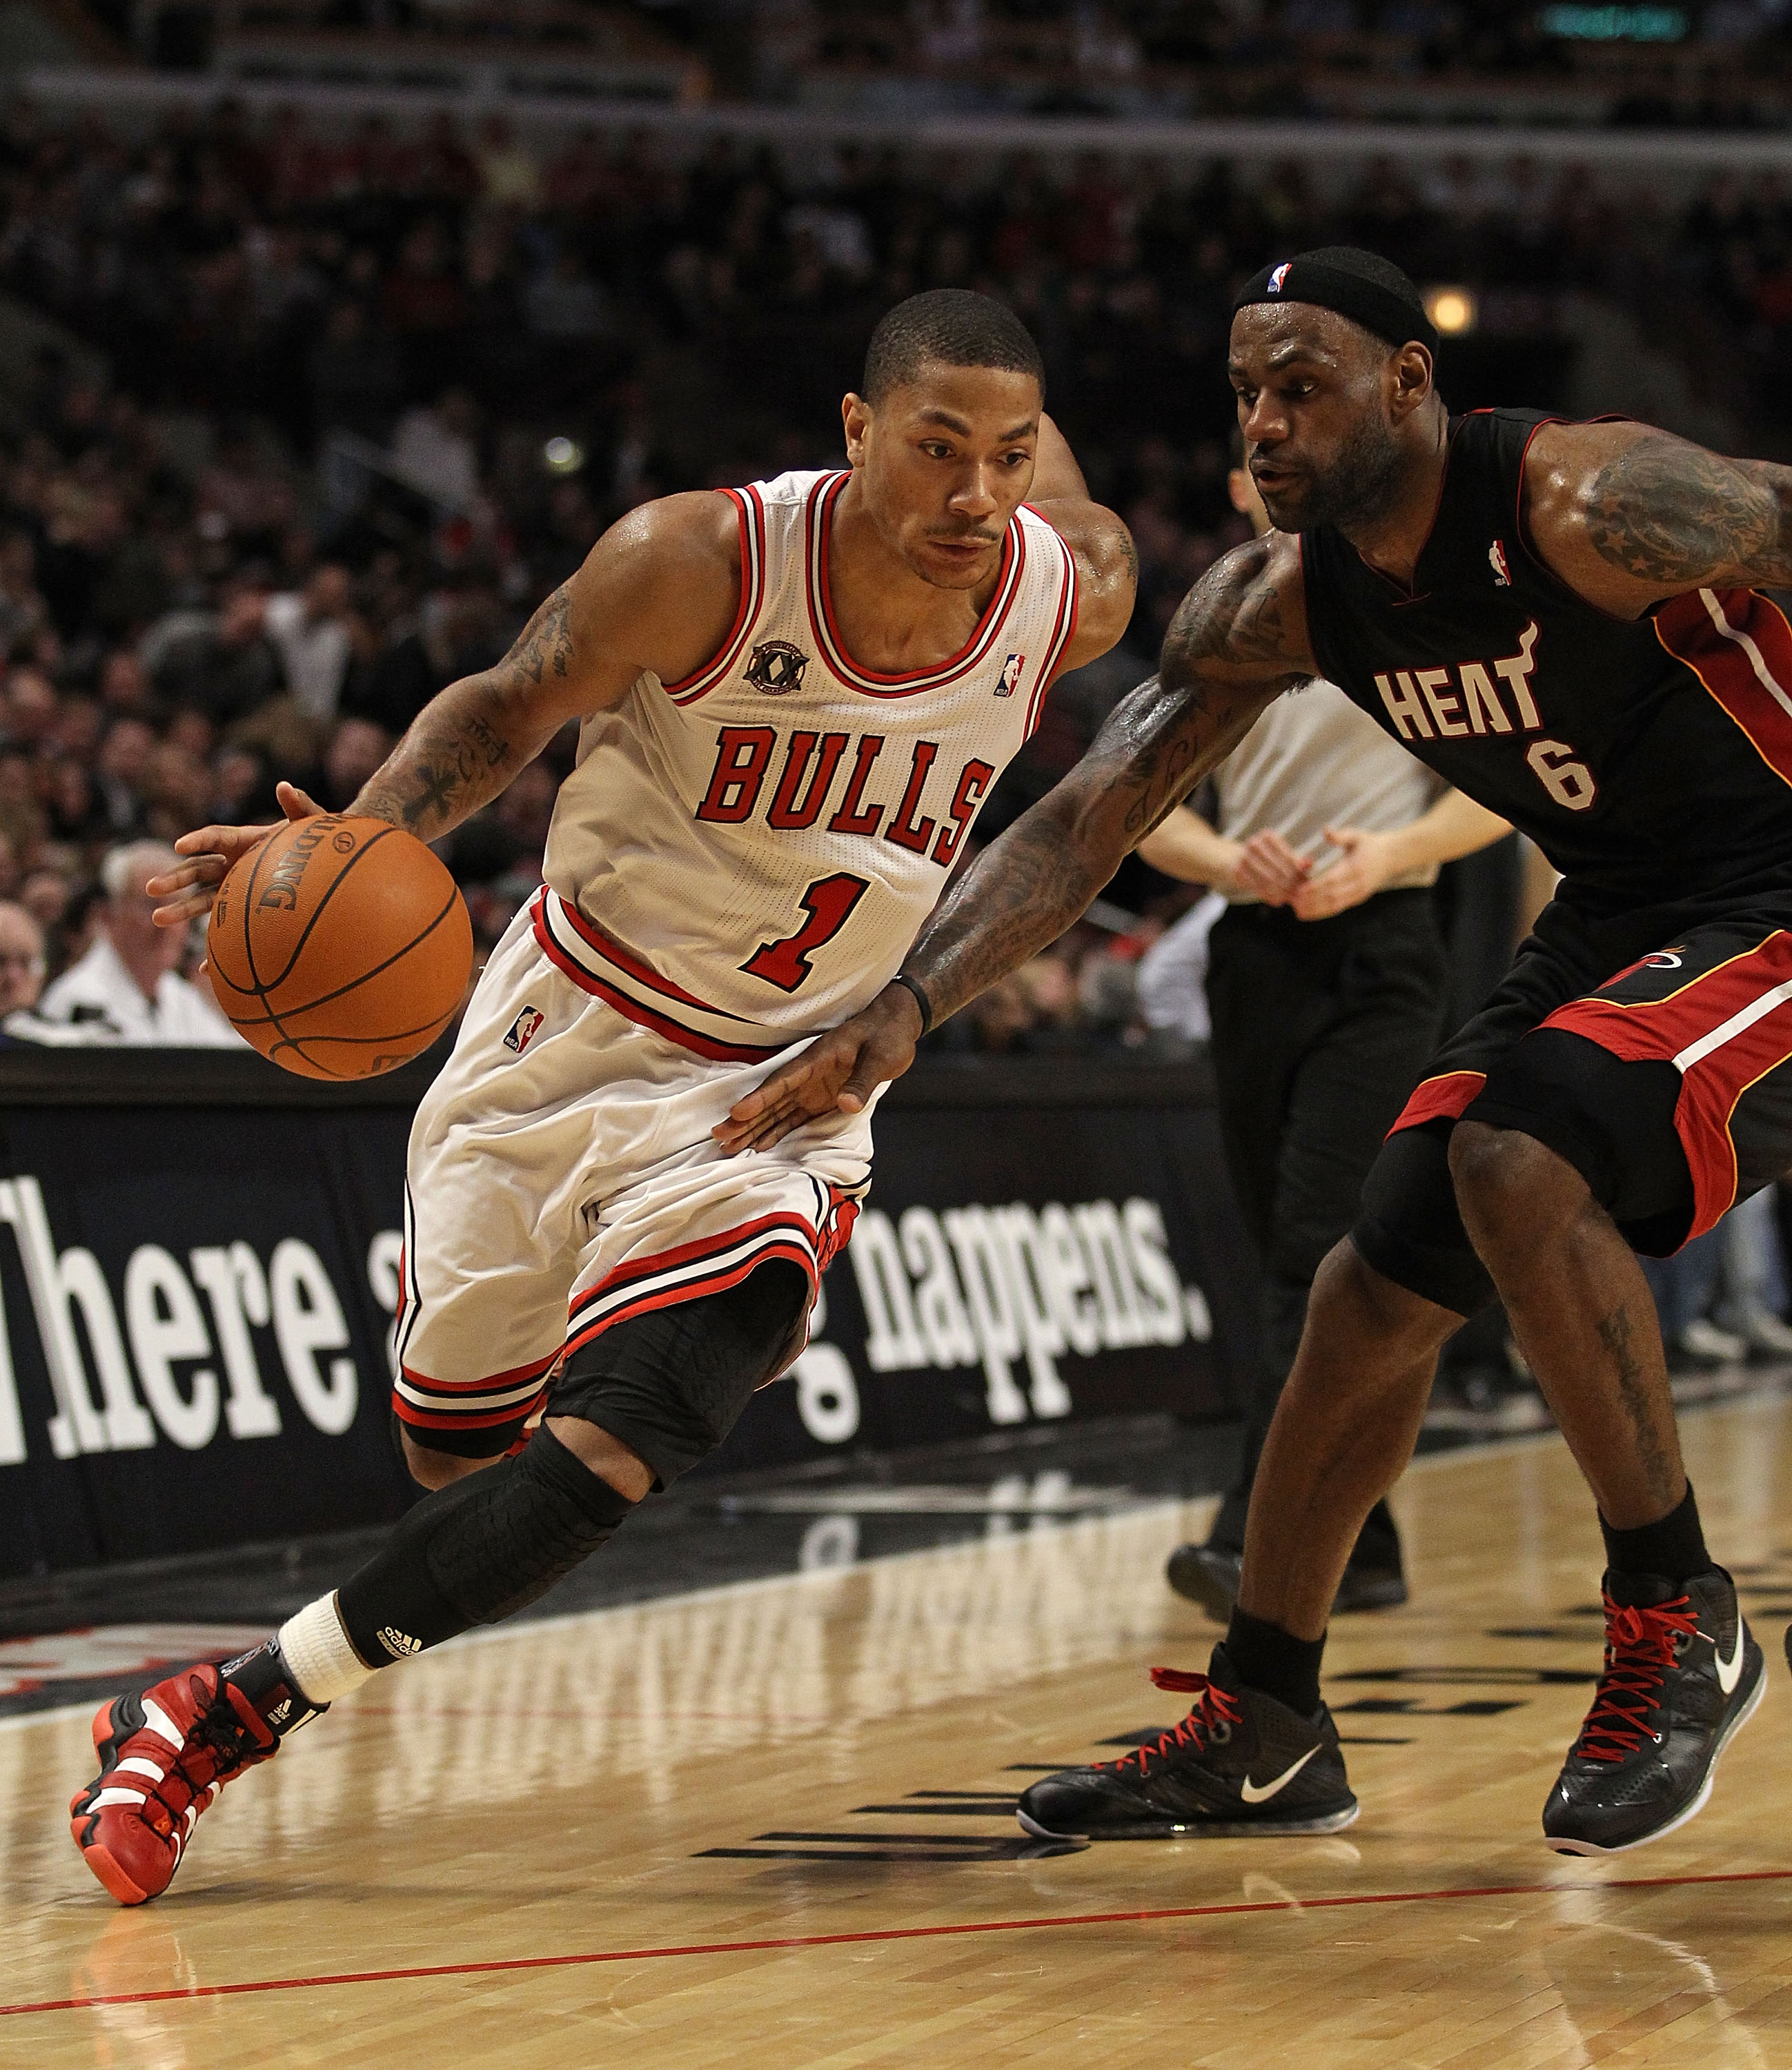 CHICAGO, IL - FEBRUARY 24: Derrick Rose #1 of the Chicago Bulls drives against LeBron James #6 of the Miami Heat at the United Center on February 24, 2011 in Chicago, Illinois. The Bulls defeated the Heat 93-89. NOTE TO USER: User expressly acknowledges a